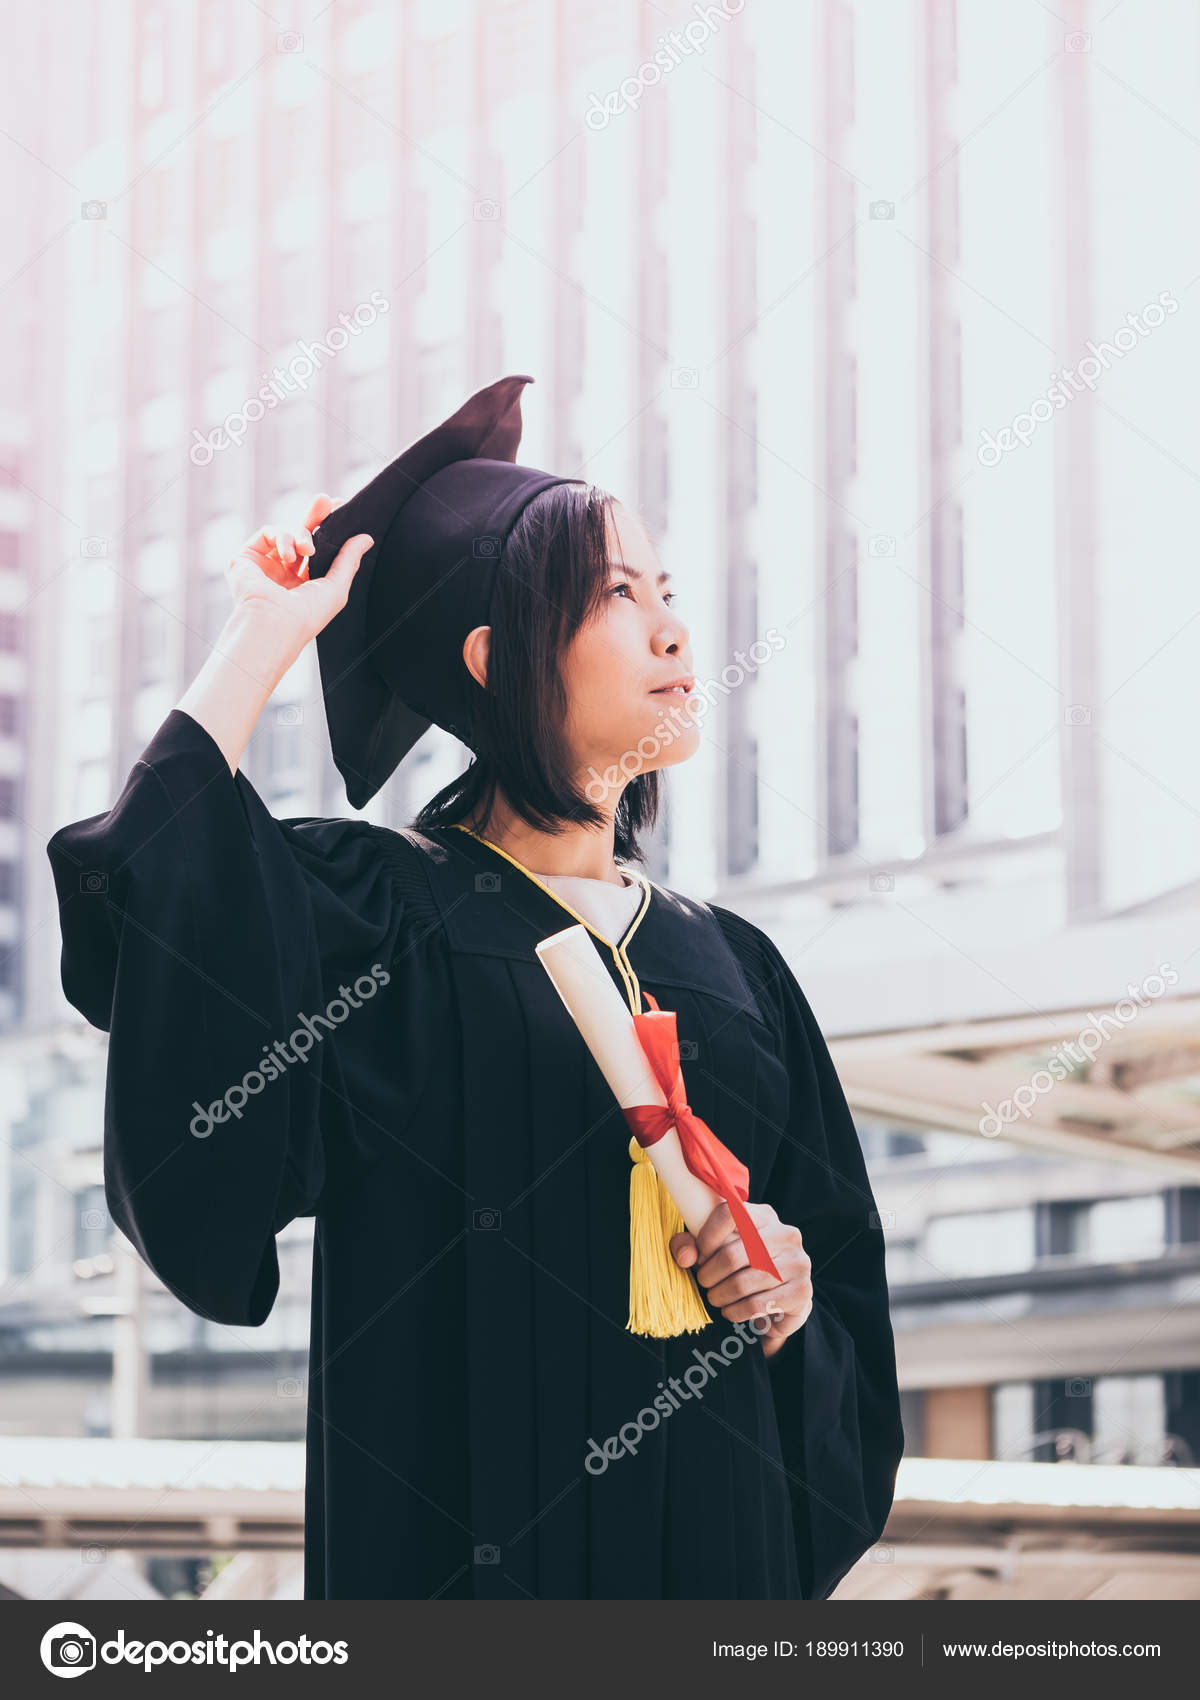 Graduation day, Asian woman with graduation cap and gown holding ...